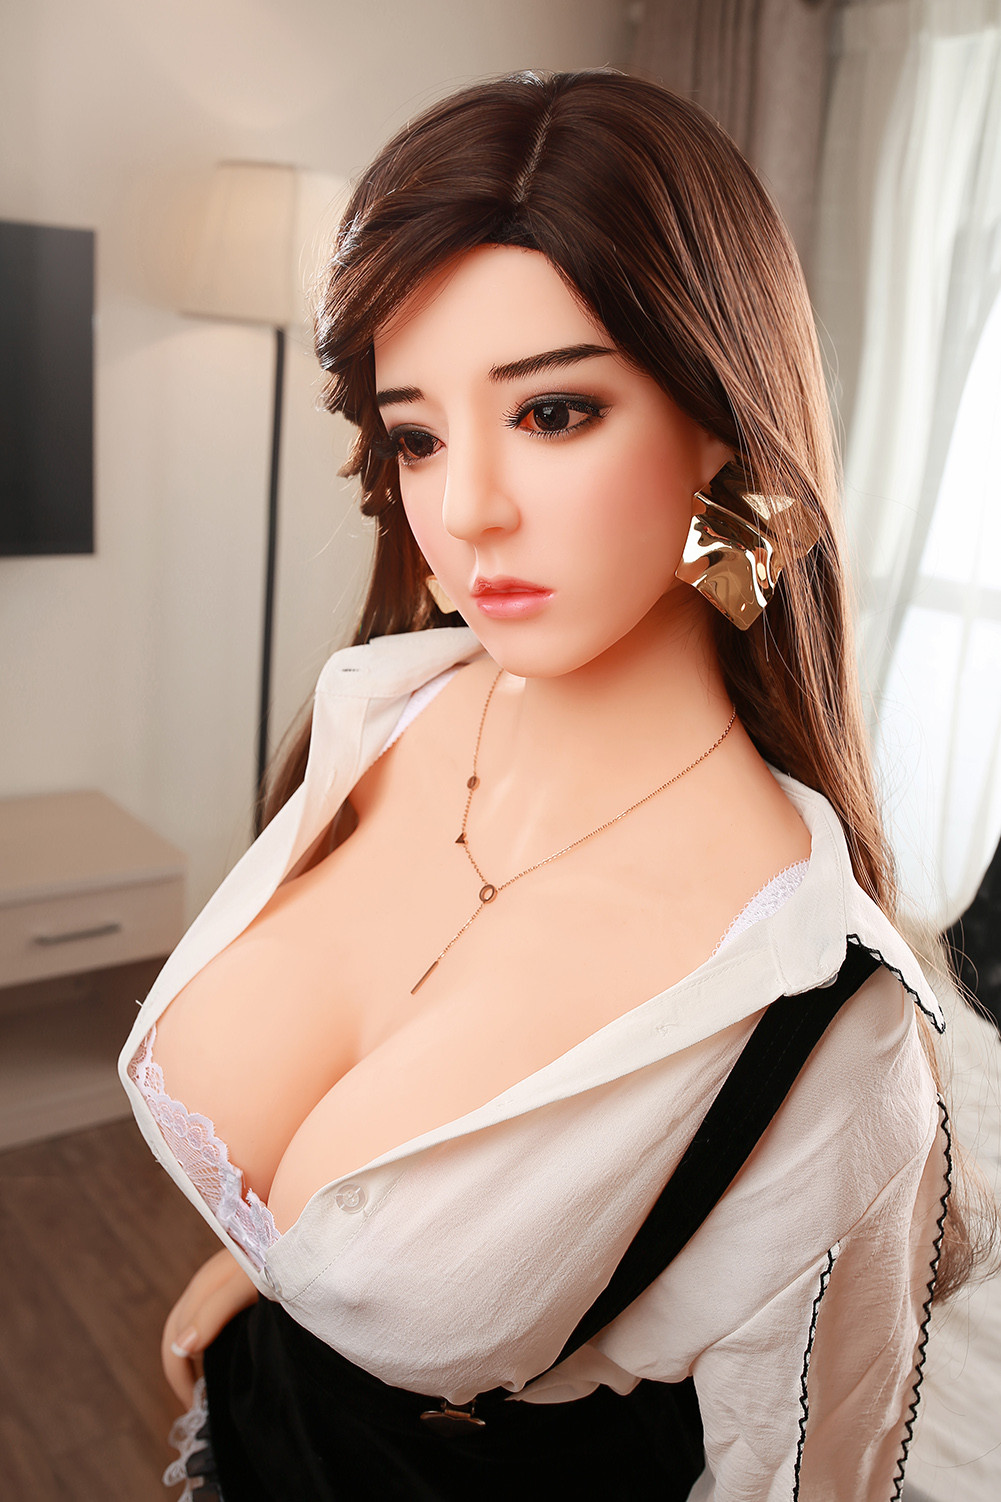 2018 NEW 168cm Small Mouth Chinese Girl